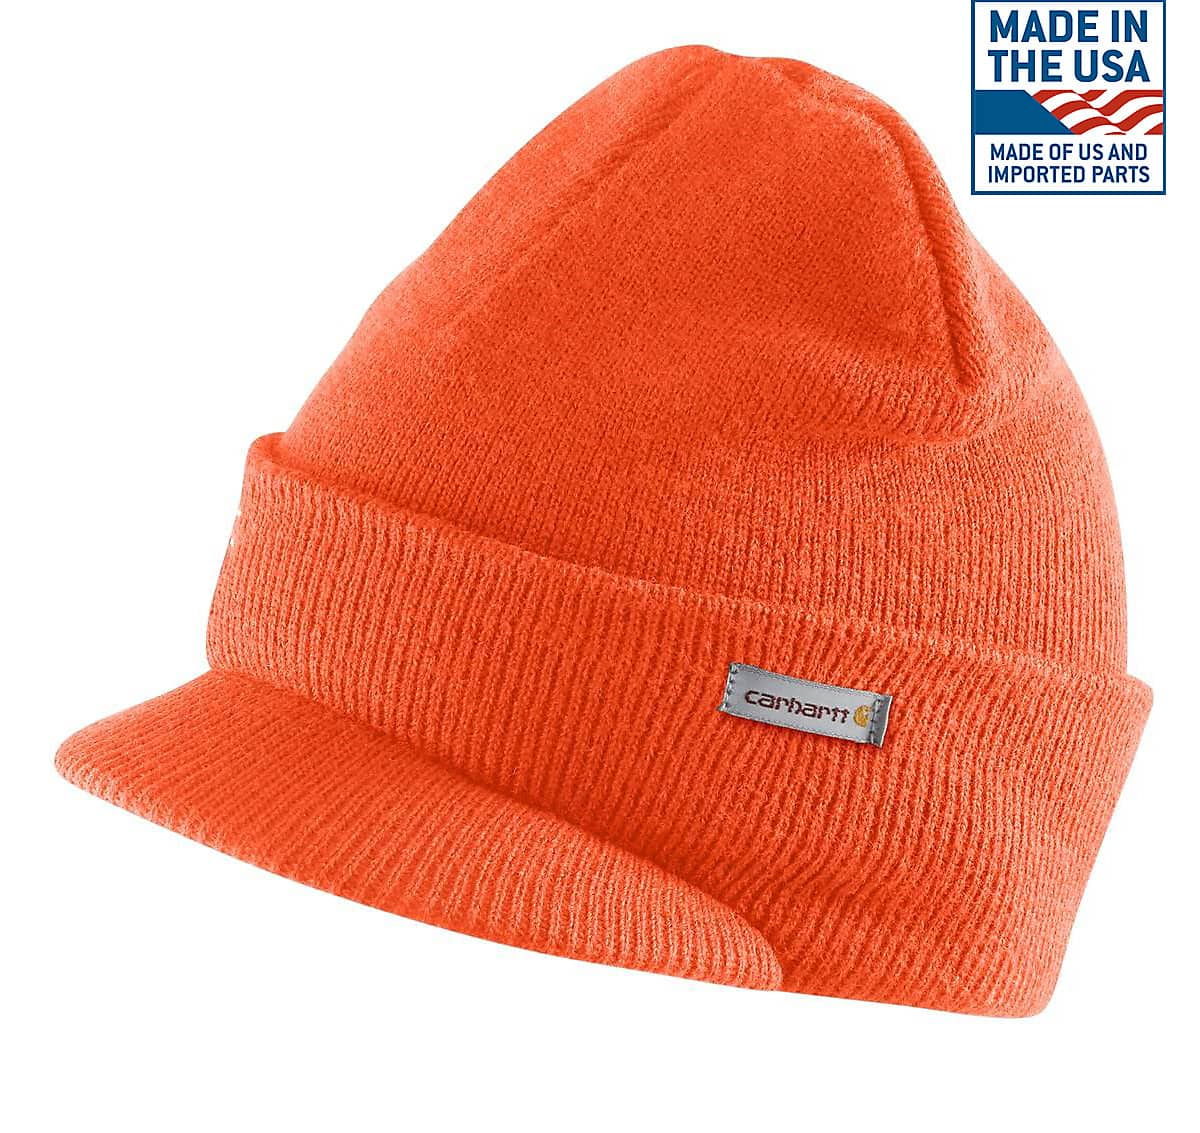 cdd0a799 Men's Knit Hat with Visor A164 | Carhartt